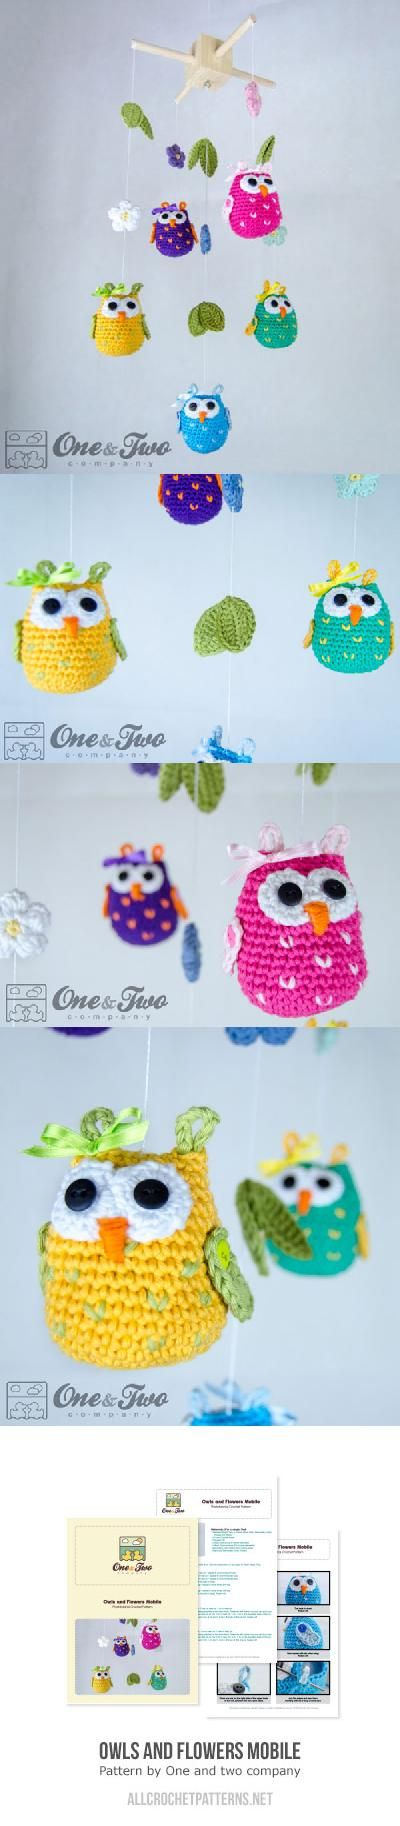 Owls and Flowers Mobile crochet pattern by One and two company | Häkeln